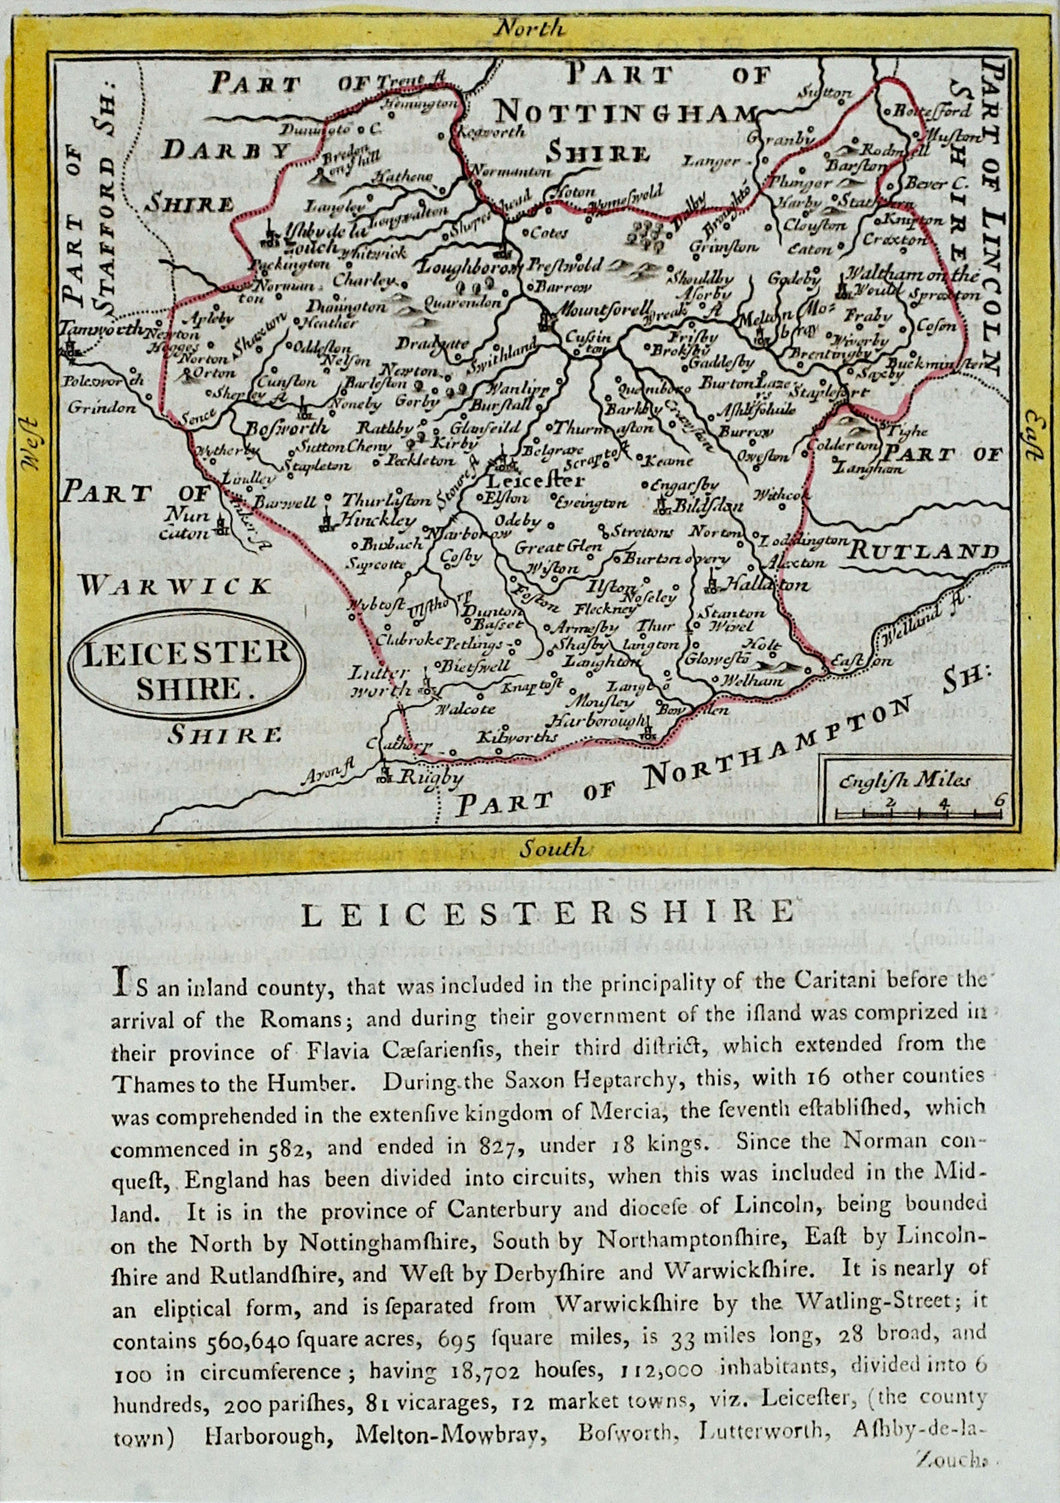 Leicestershire - Antique Map by Seller/Grose 1694 - 1787